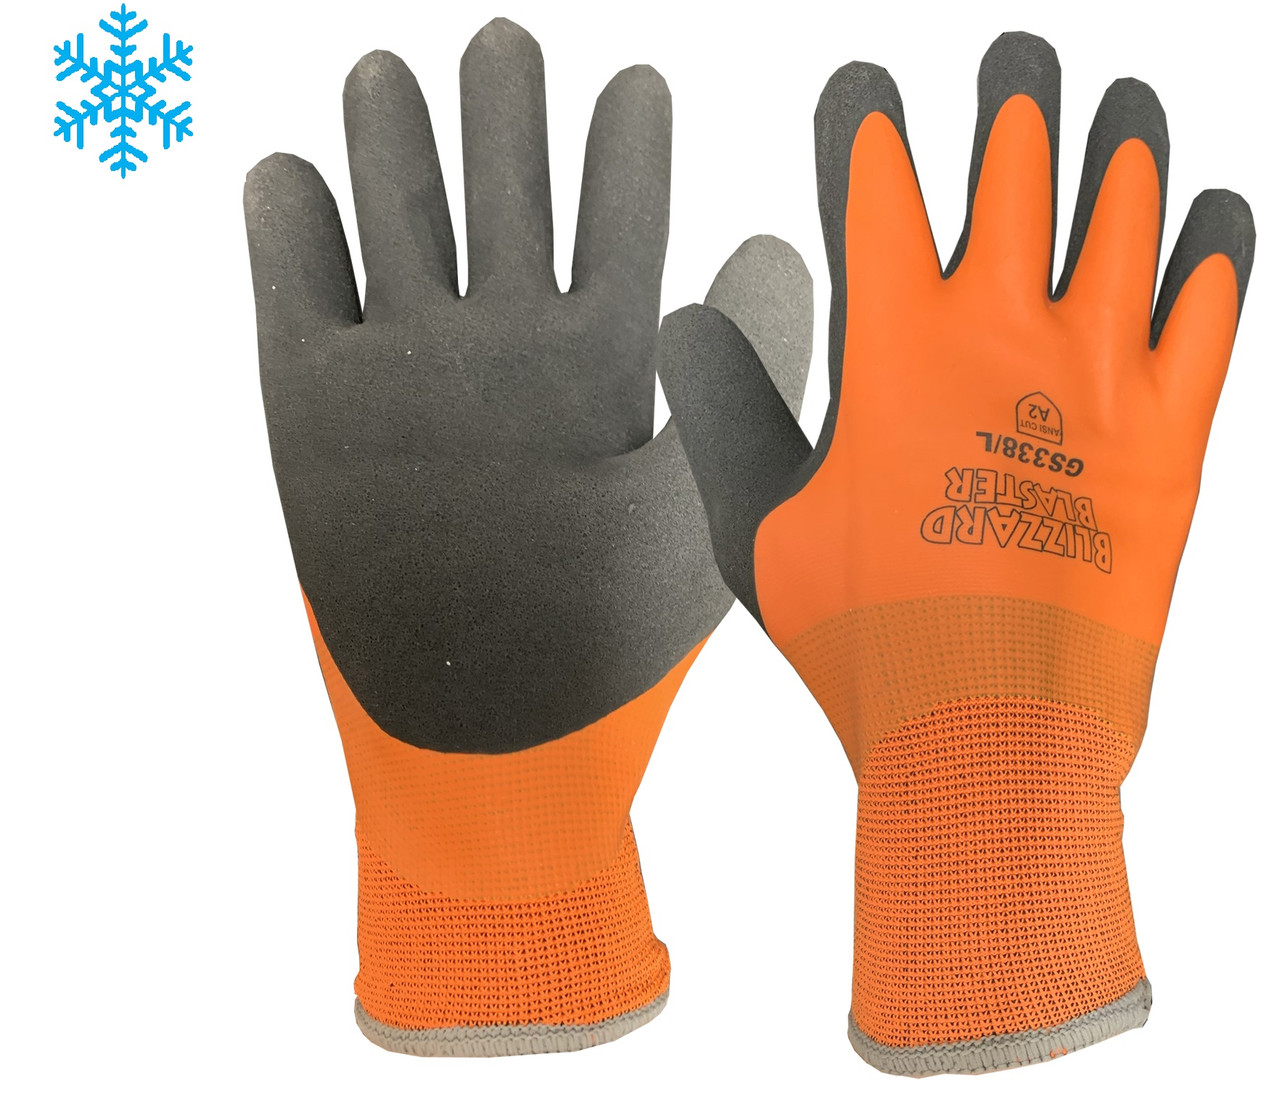 Blizzard Blaster Thermal Fully Coated Gloves - Insulated Gloves  ## GS338 ##